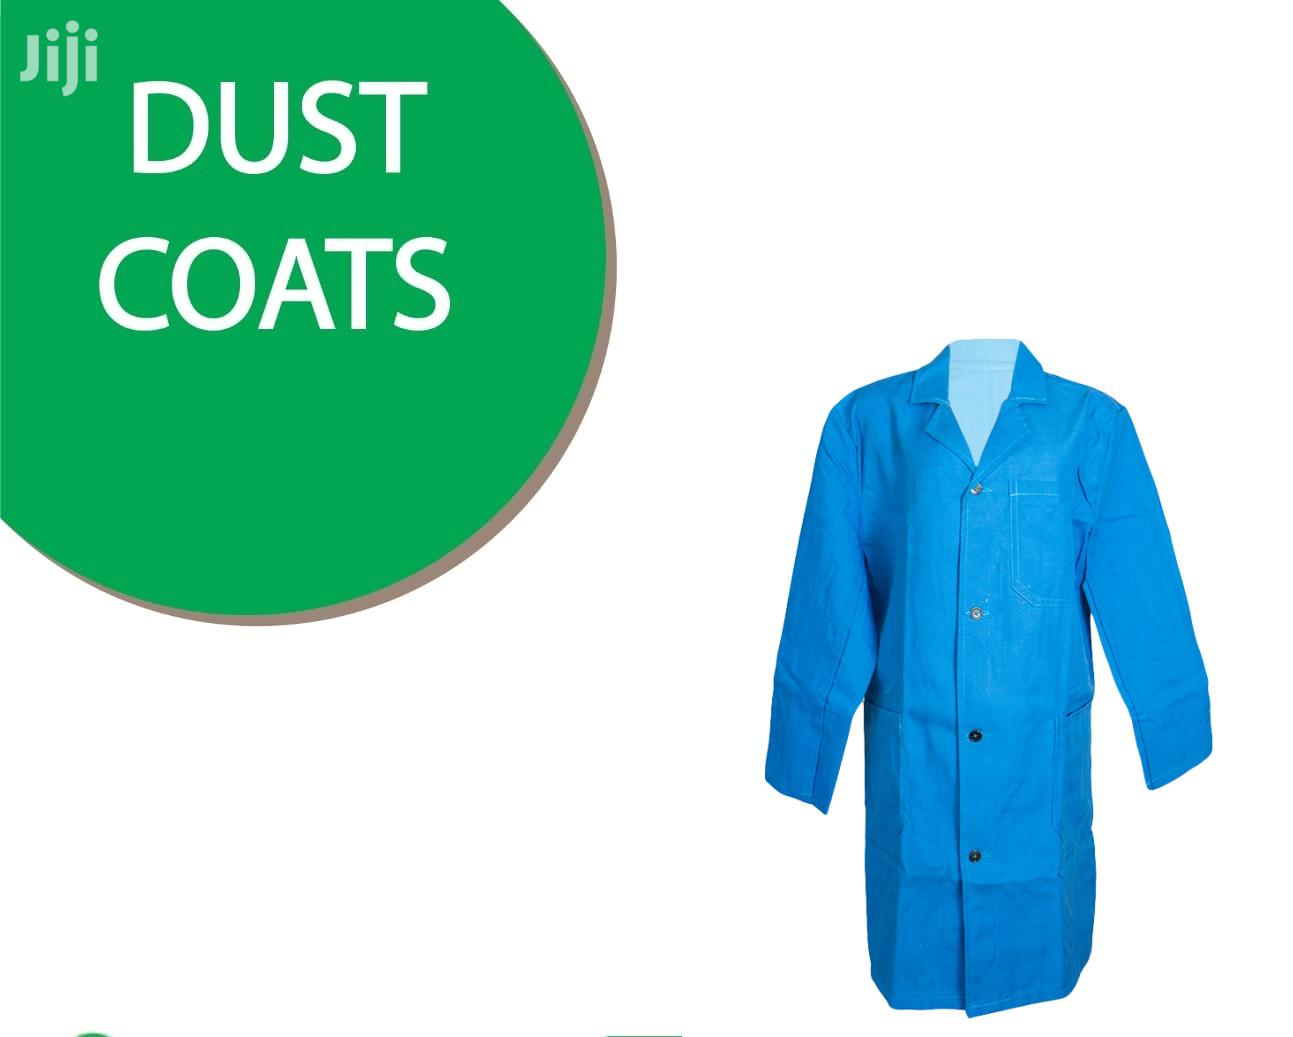 Dust Coats - We Also Do Dust Coat Branding | Clothing for sale in Nairobi Central, Nairobi, Kenya